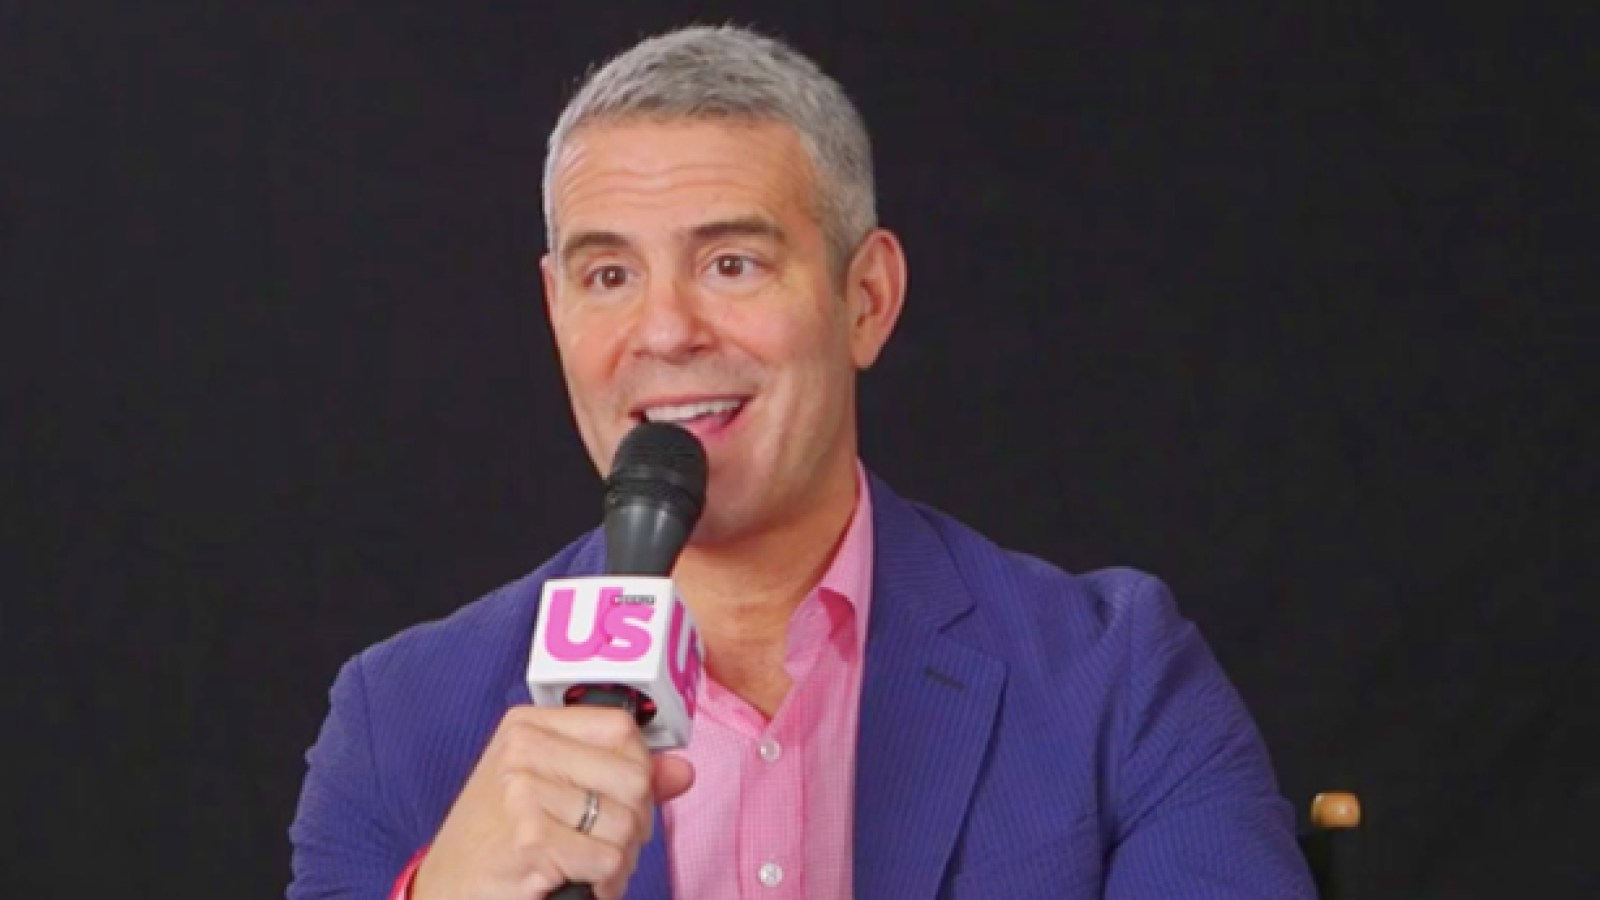 Andy Cohen Talks 'RHONY' Boat Nightmare, Carole's Exit: Watch